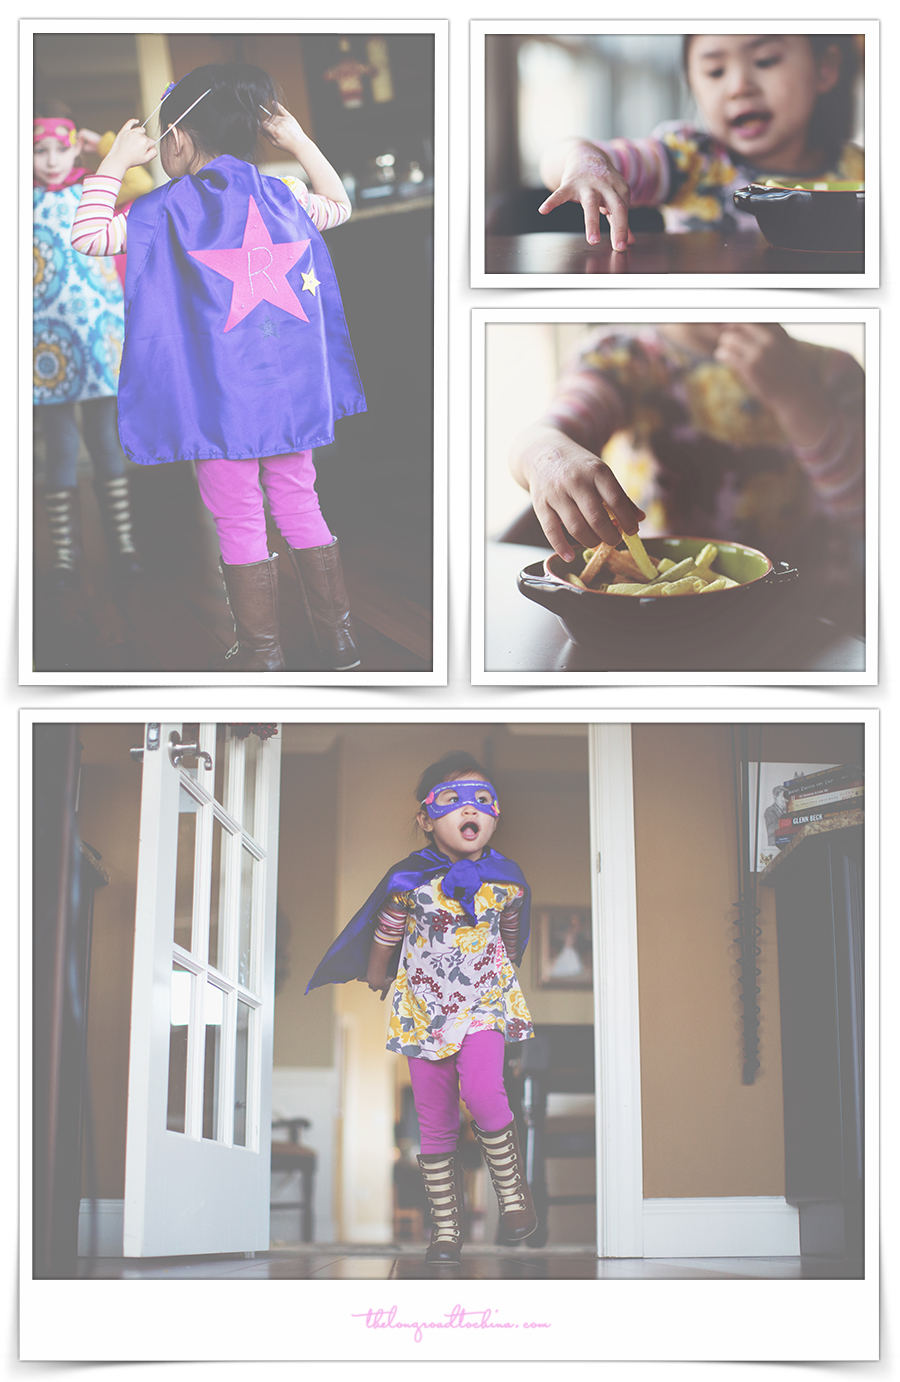 Super Hero Healing Powers Collage BLOG